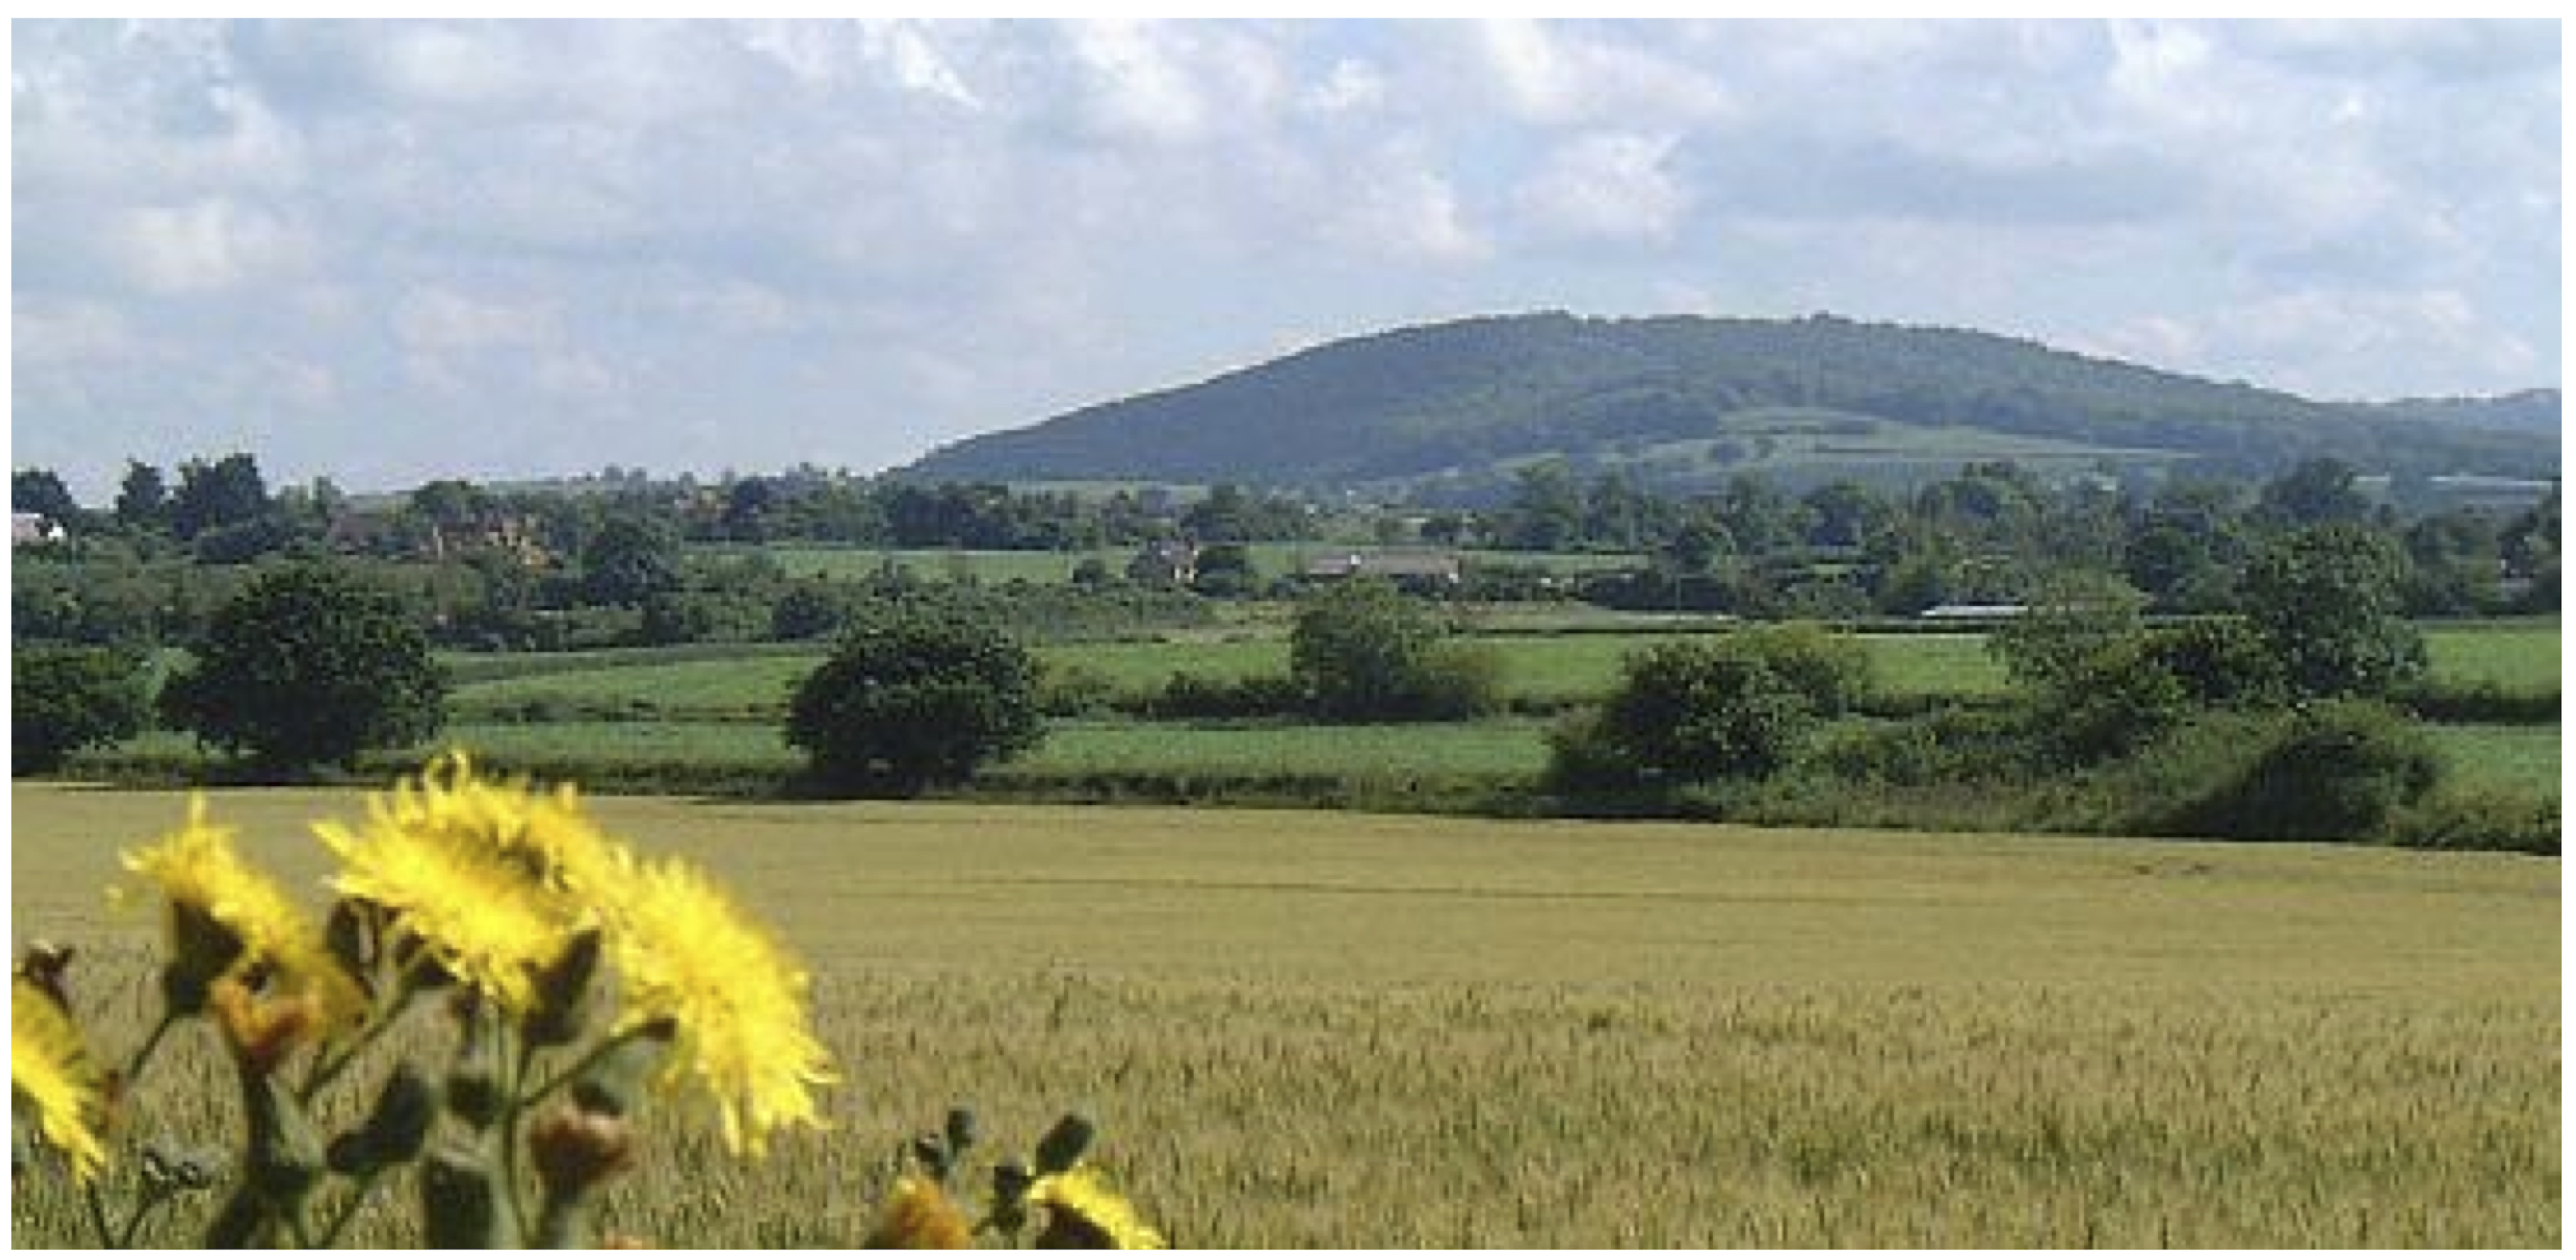 Duncliffe Hill - scene of a Clubmen gathering that Cromwell convinced to disperse peaceably (4 August 1645)